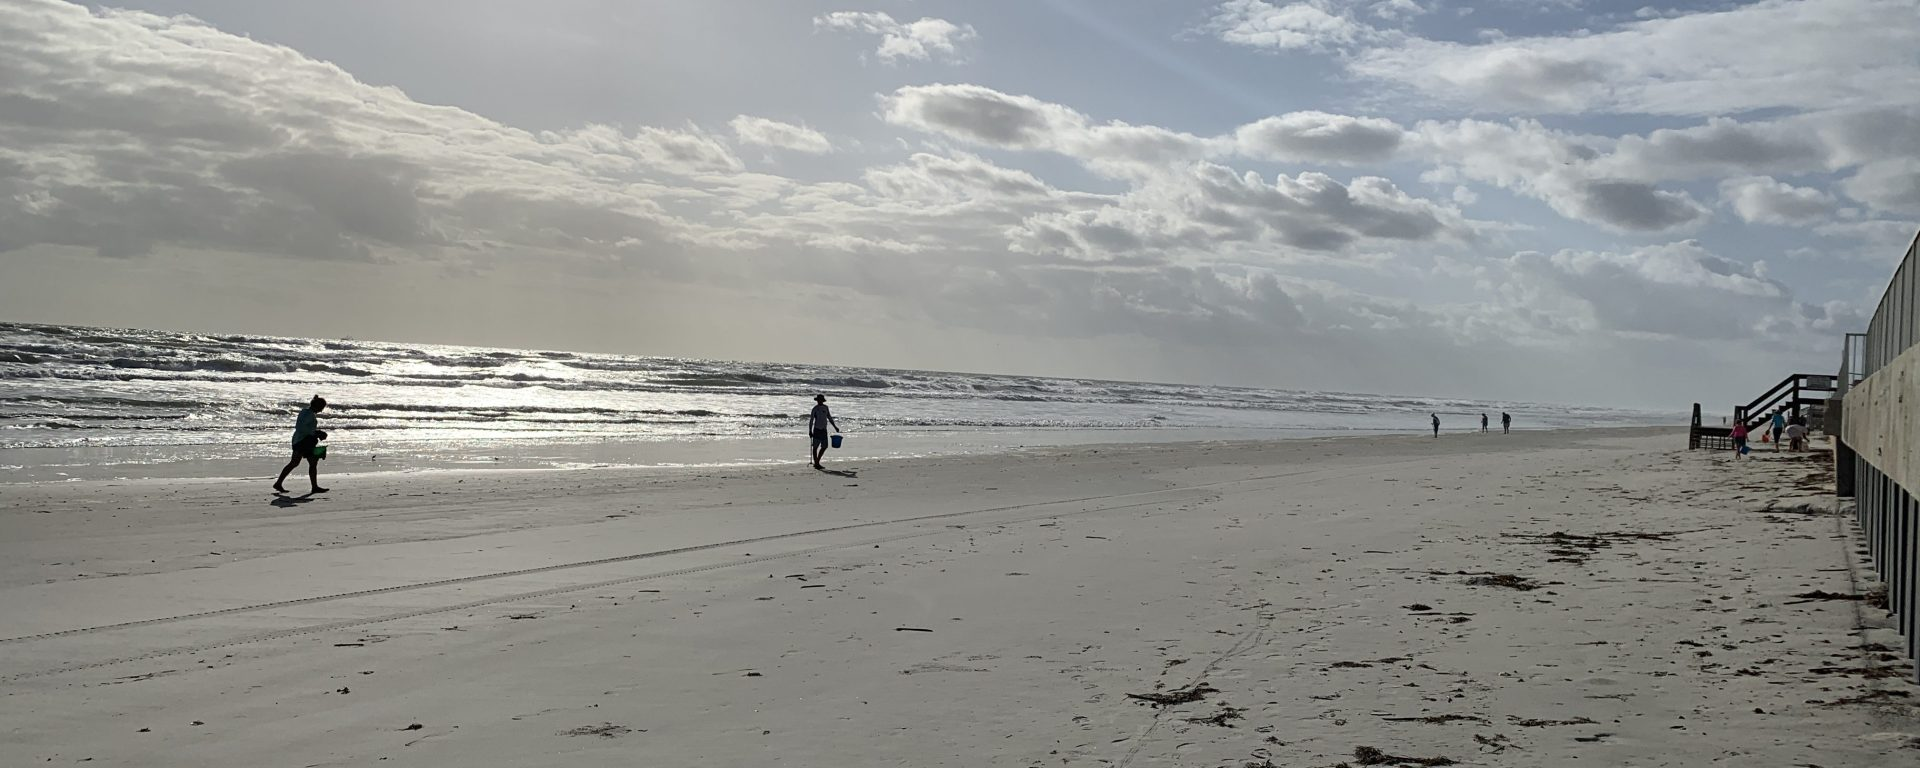 empty beach in Volusia County with a couple of people walking